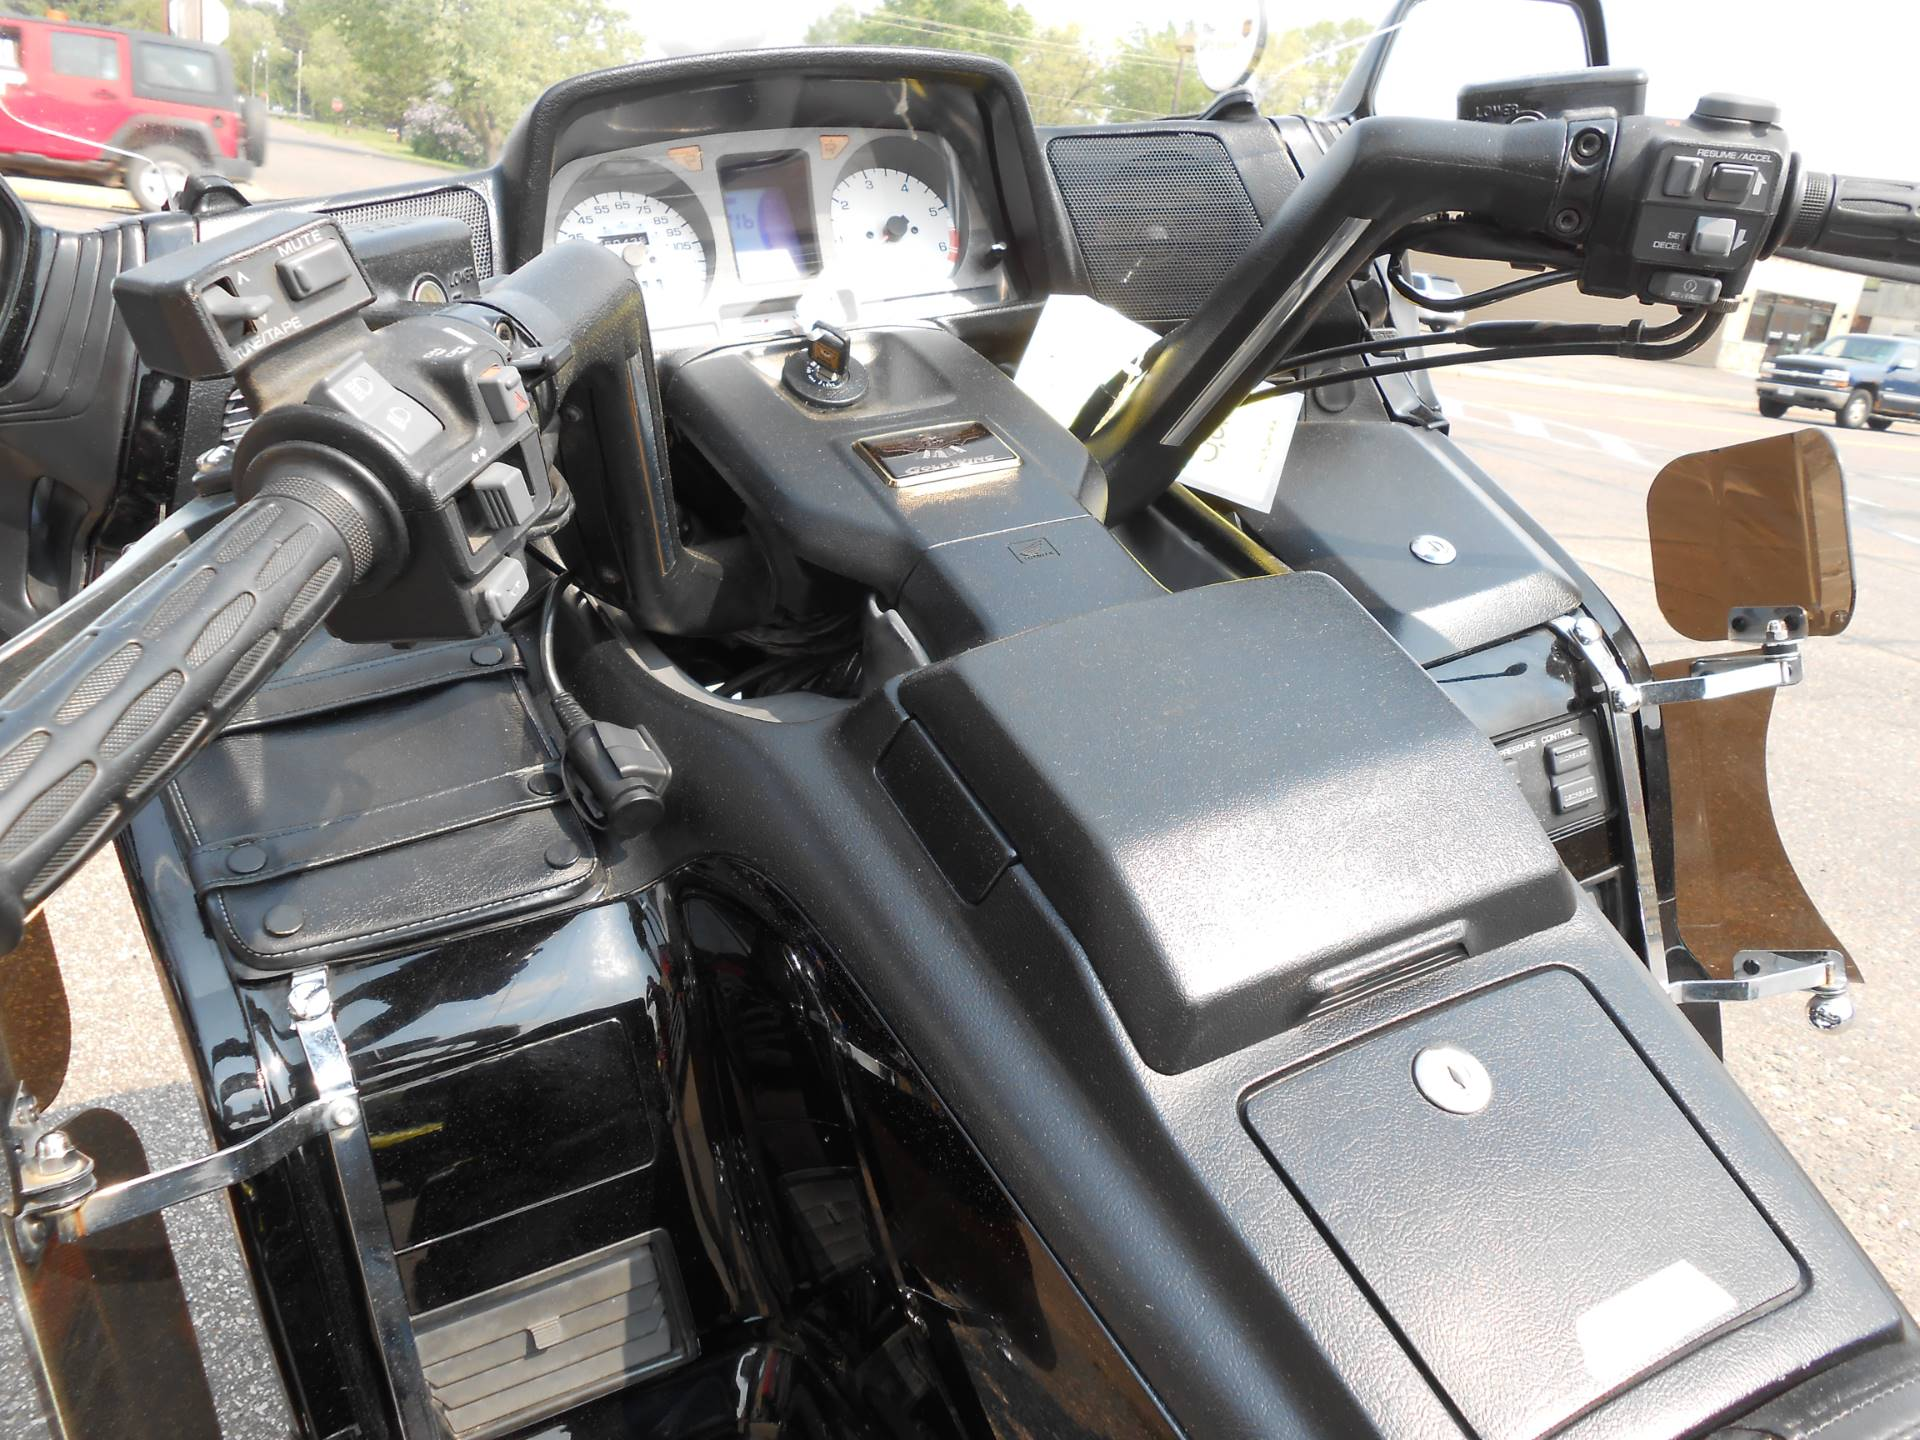 1998 Honda Gold Wing SE in Rice Lake, Wisconsin - Photo 7